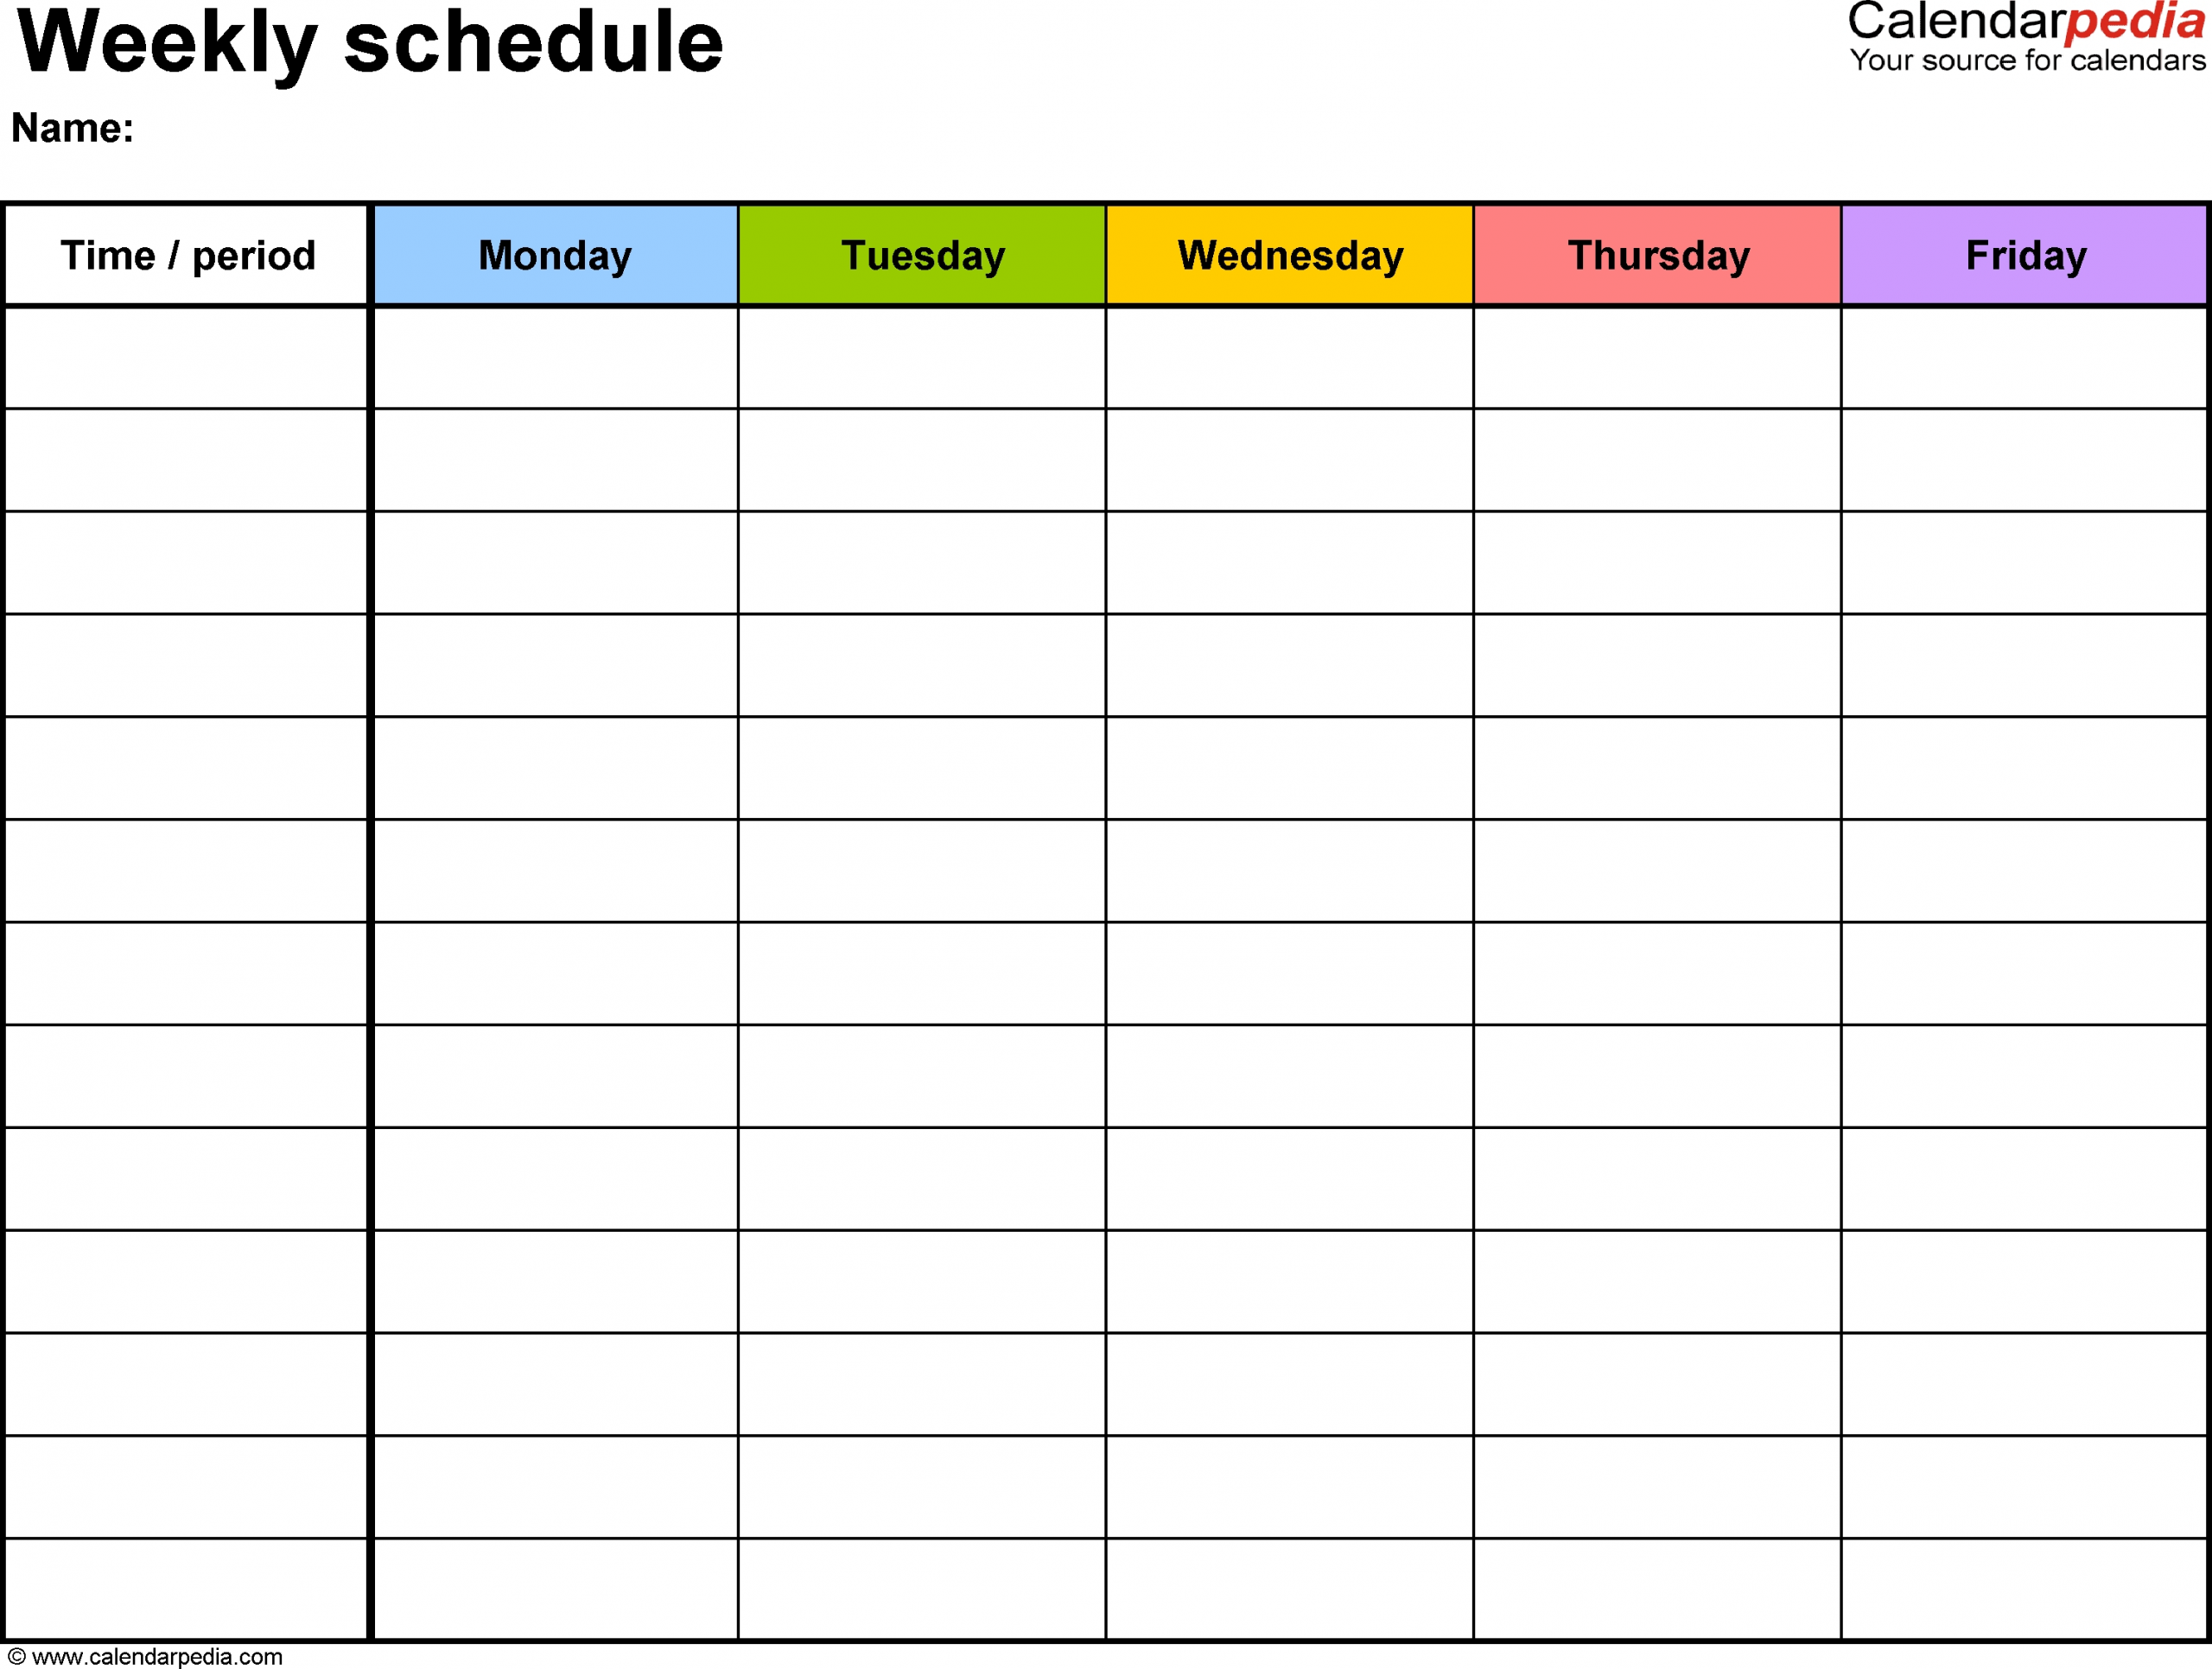 Printable Weekly Planner With Time Slots - Calendar Printable Weekly Schedule With Time Slots